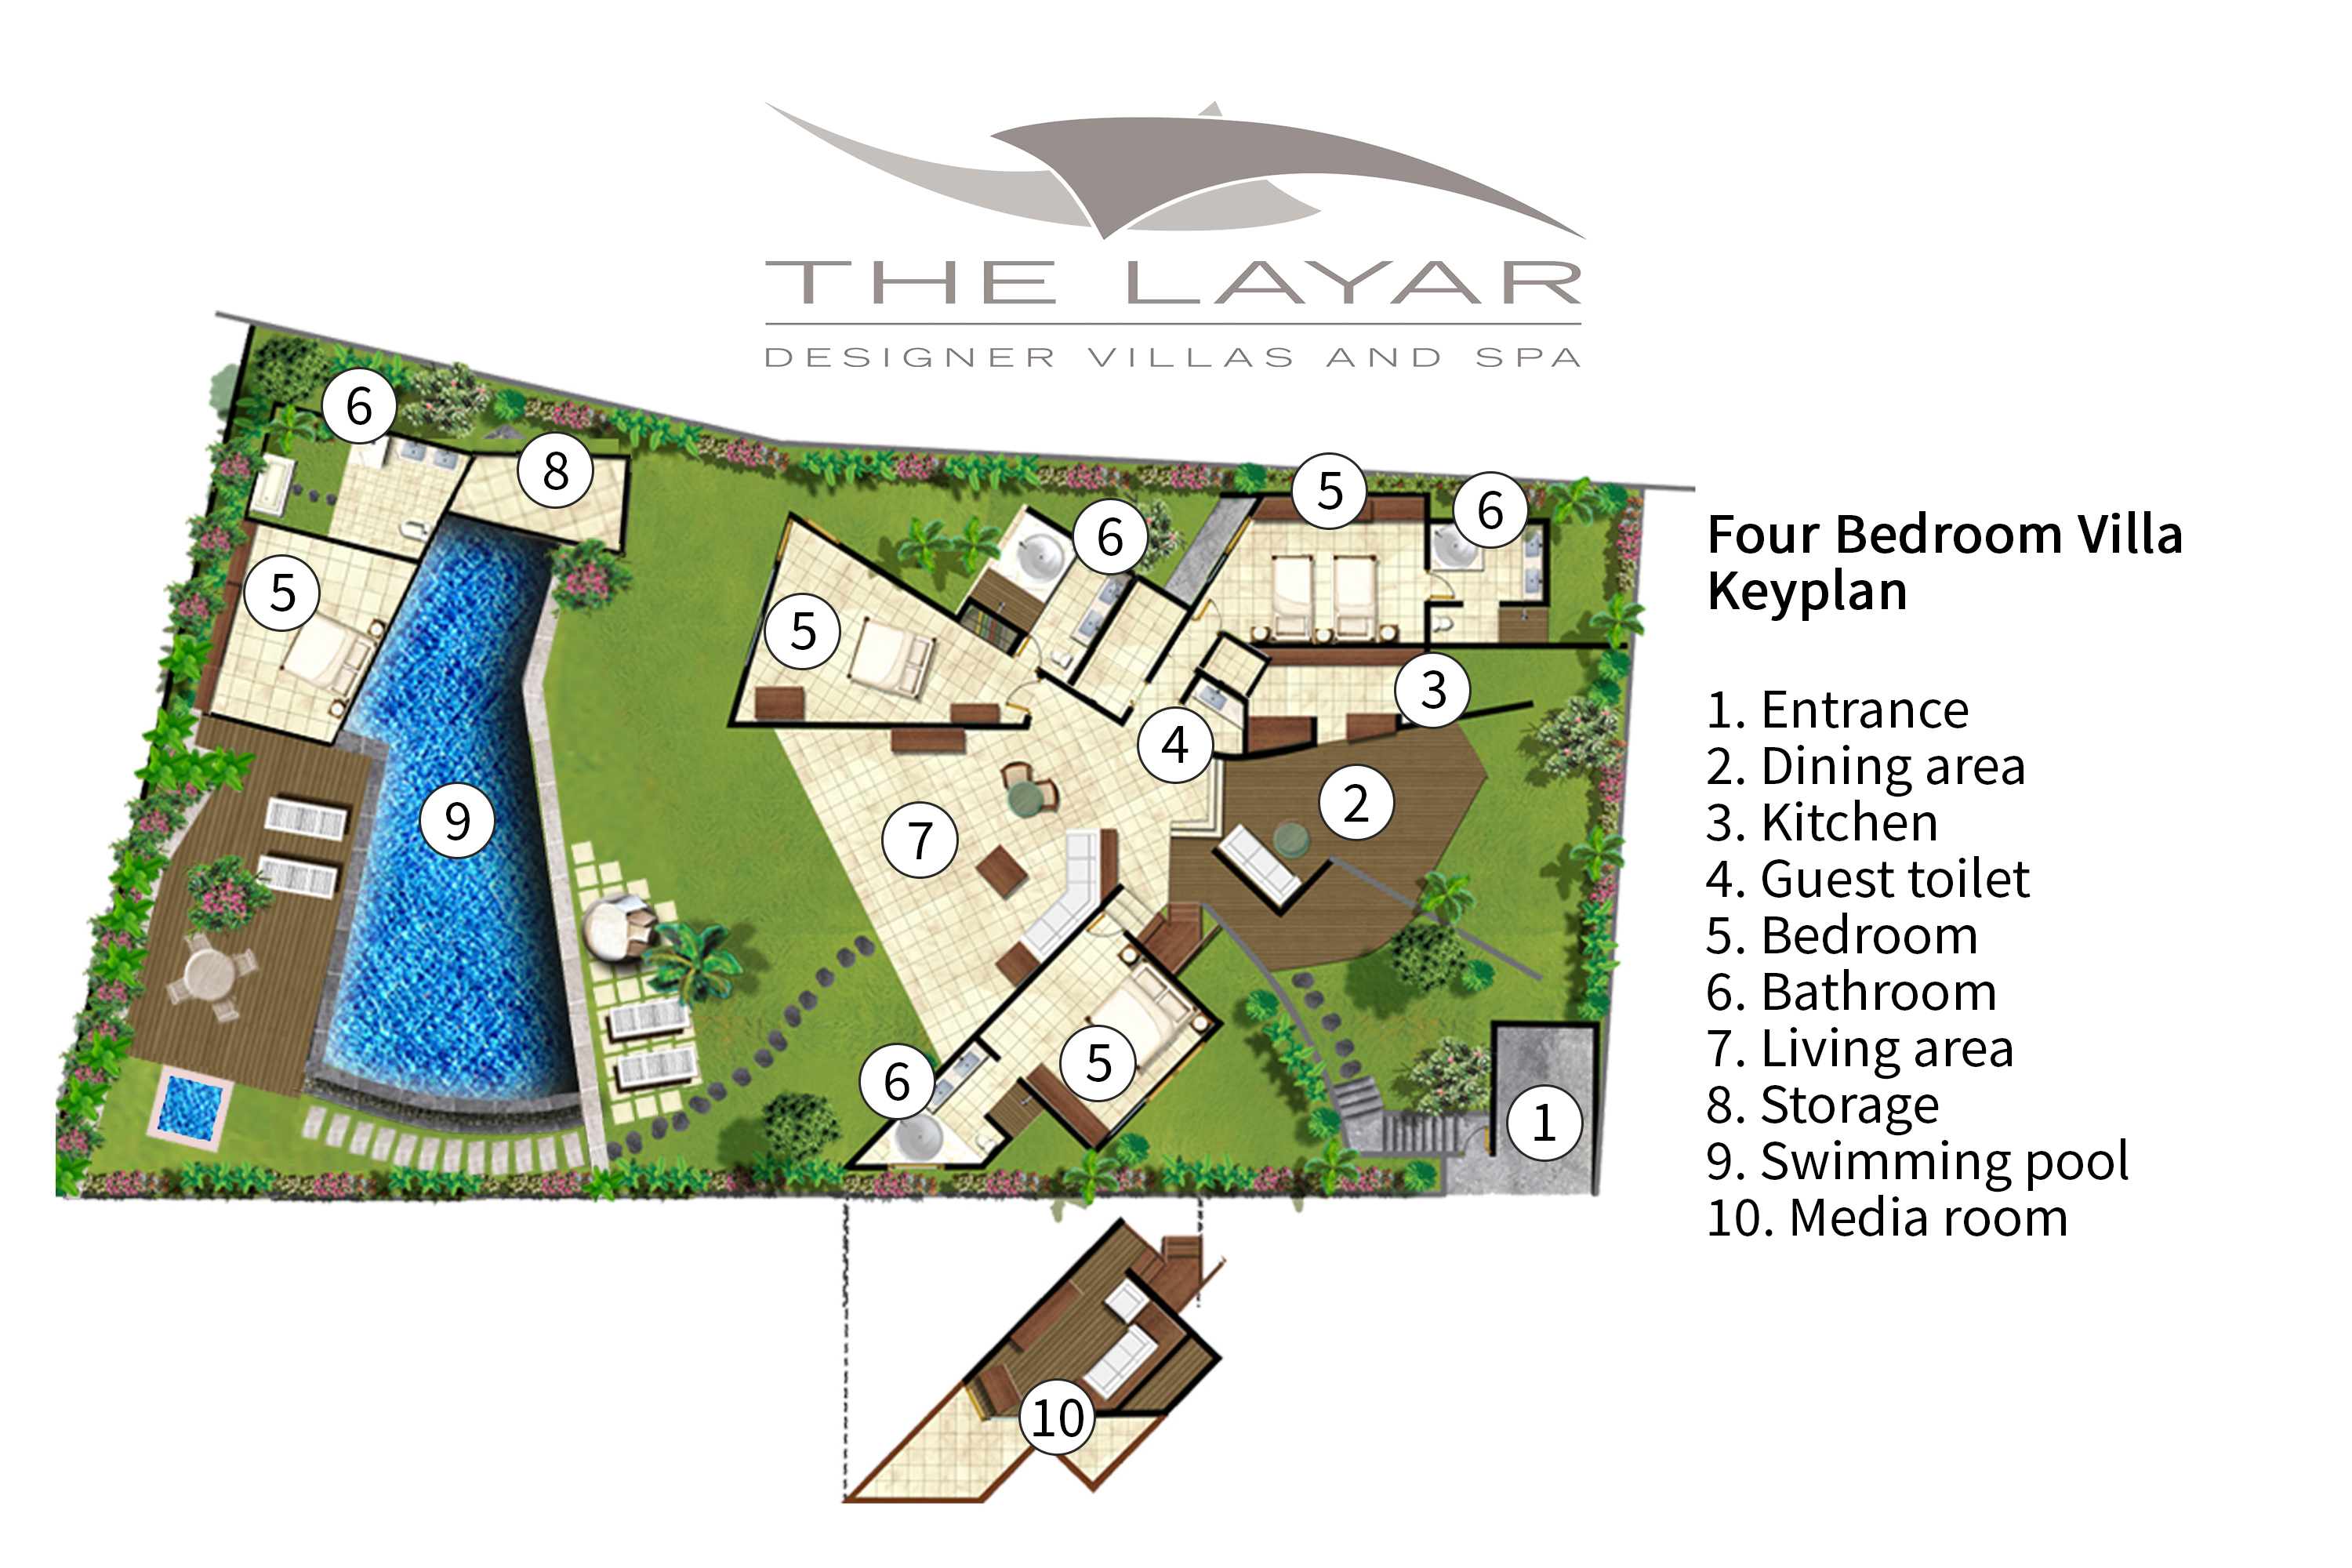 The Layar - four bedroom villa